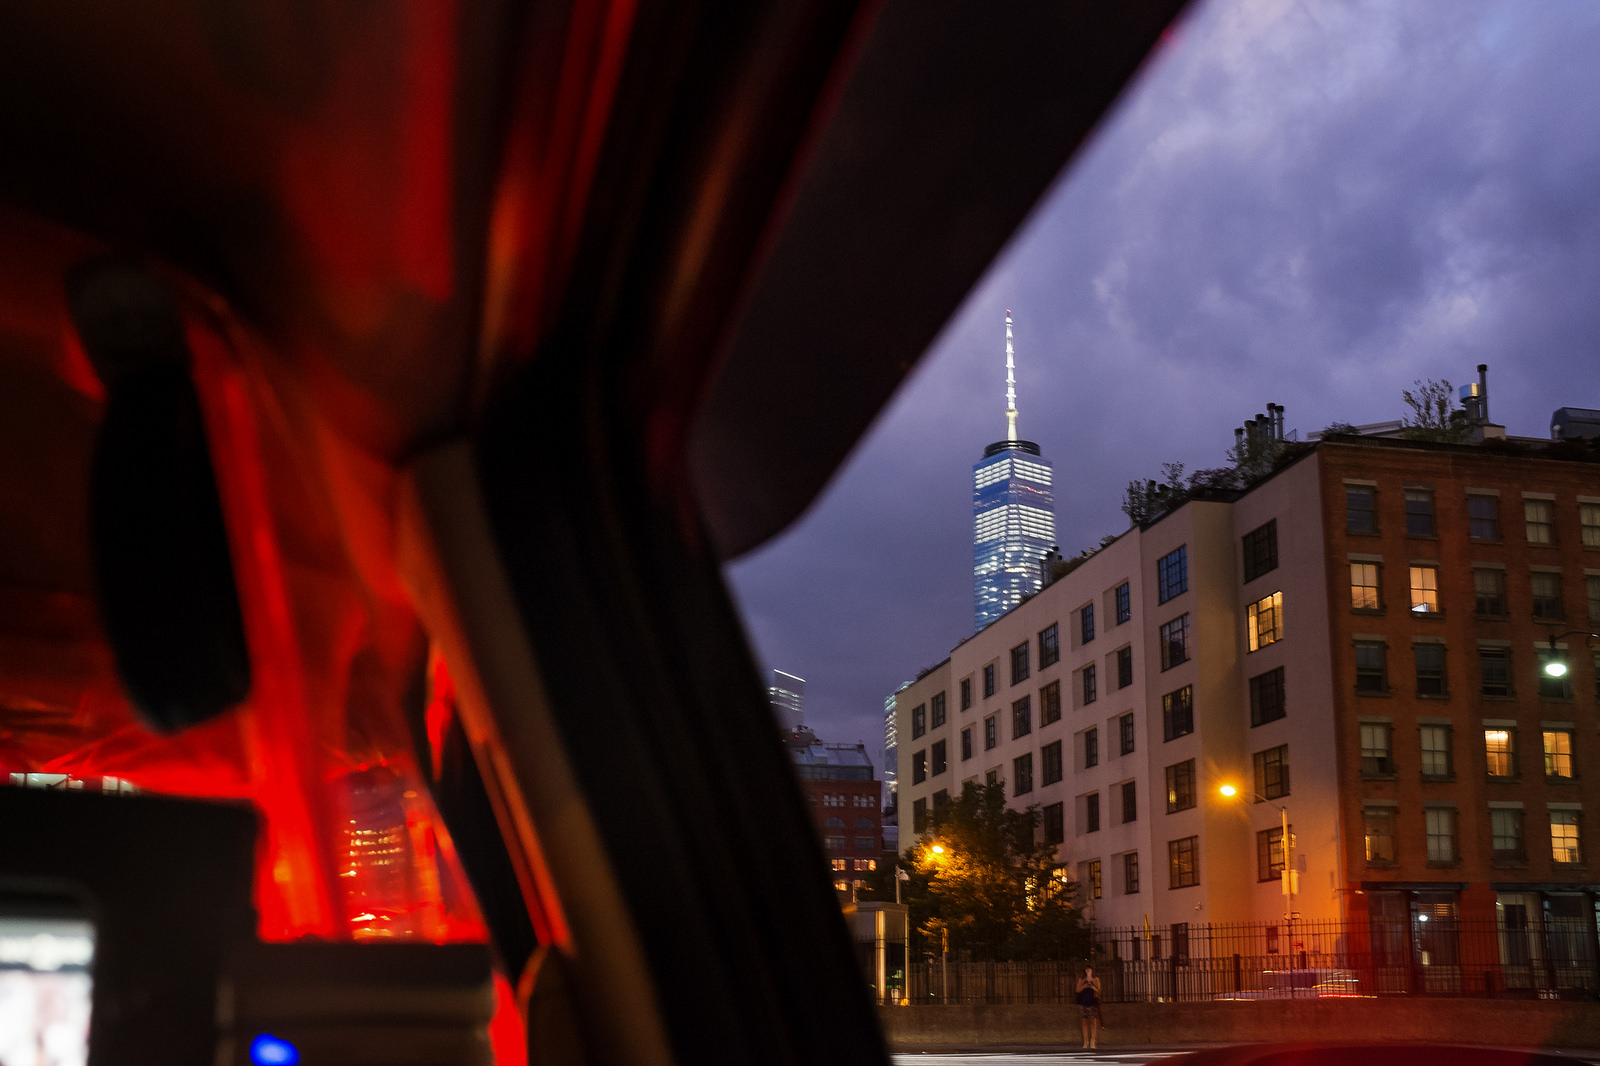 """Scenes from a Taxi"" August 2015, New York, NY Fujifilm X100s, 23mm, f/4, 1/9, ISO 6400"